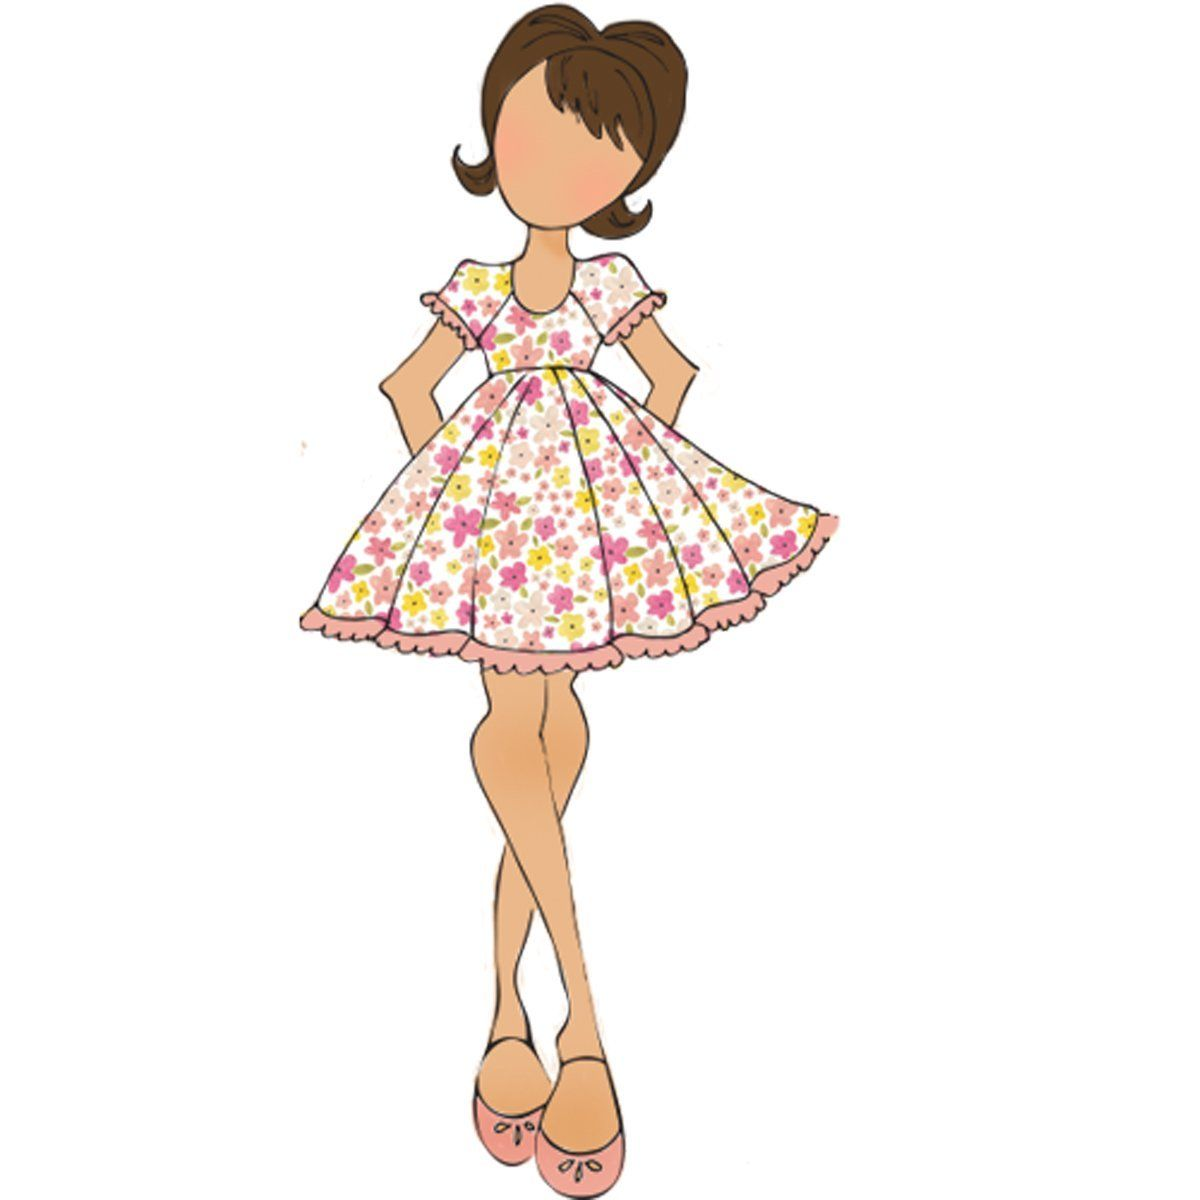 Prima Marketing Candie Julie Nutting Mixed Media Doll Rubber Cling Stamp 910792: Amazon.co.uk: Kitchen & Home